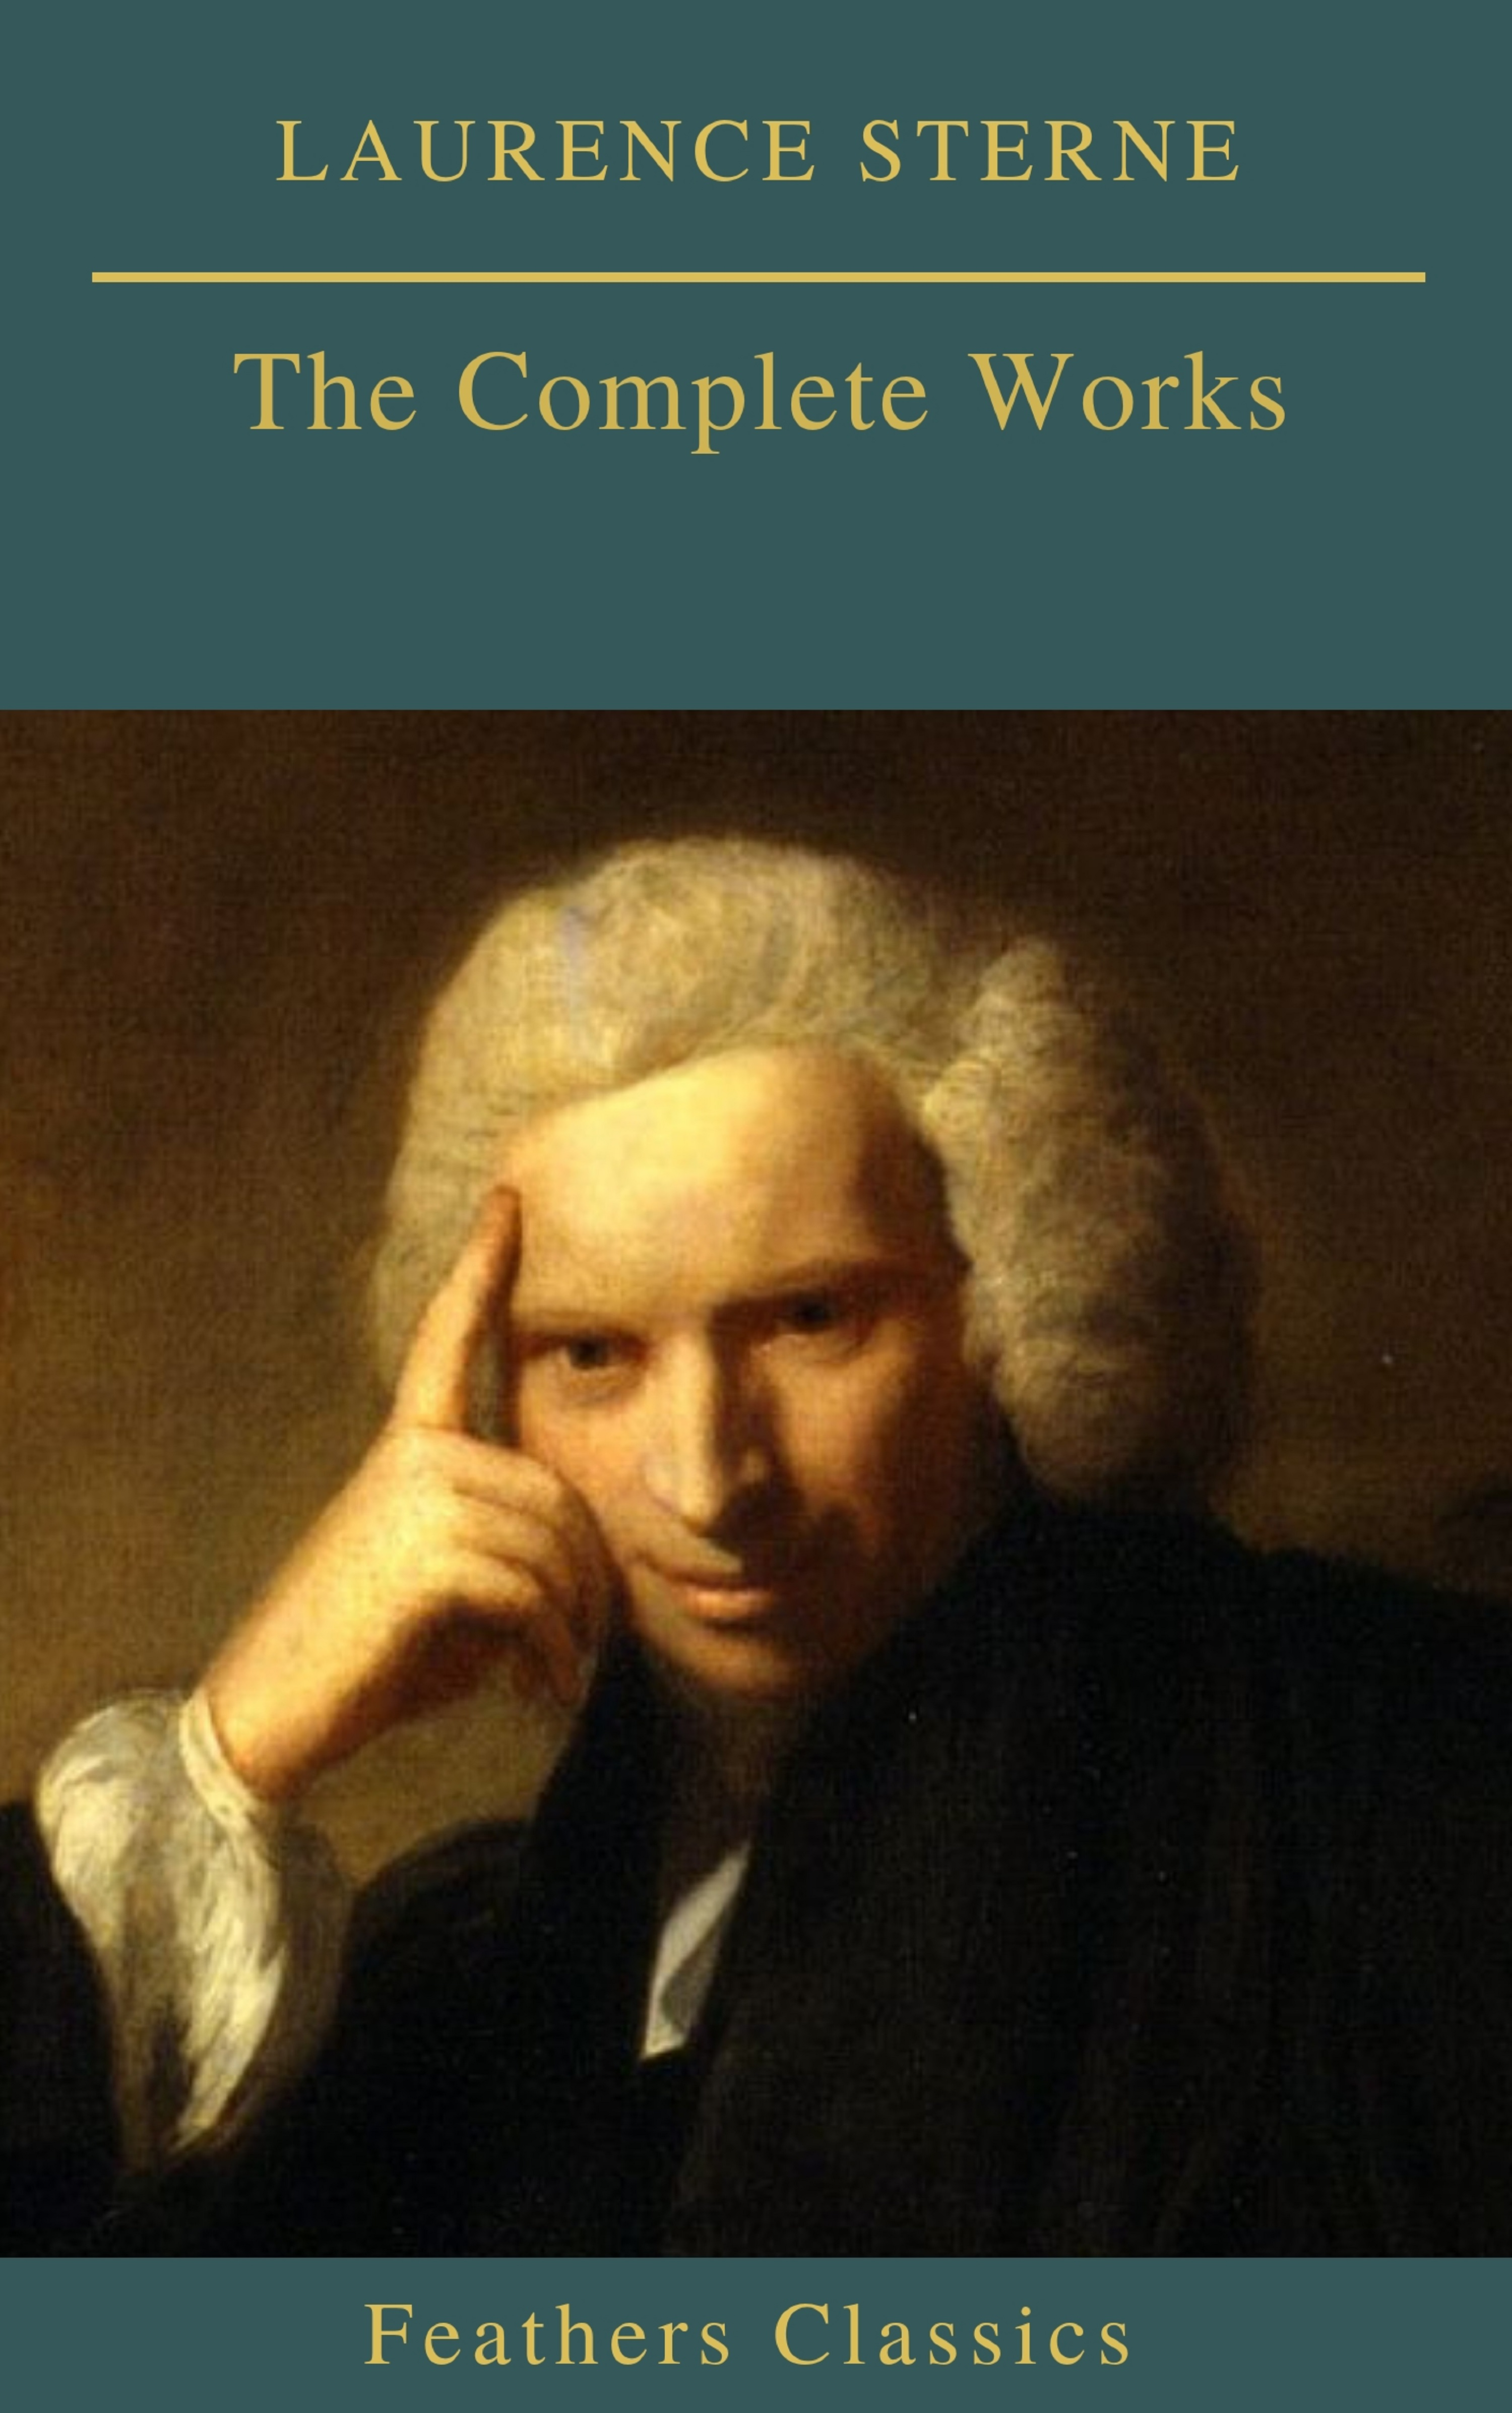 laurence sterne the complete works